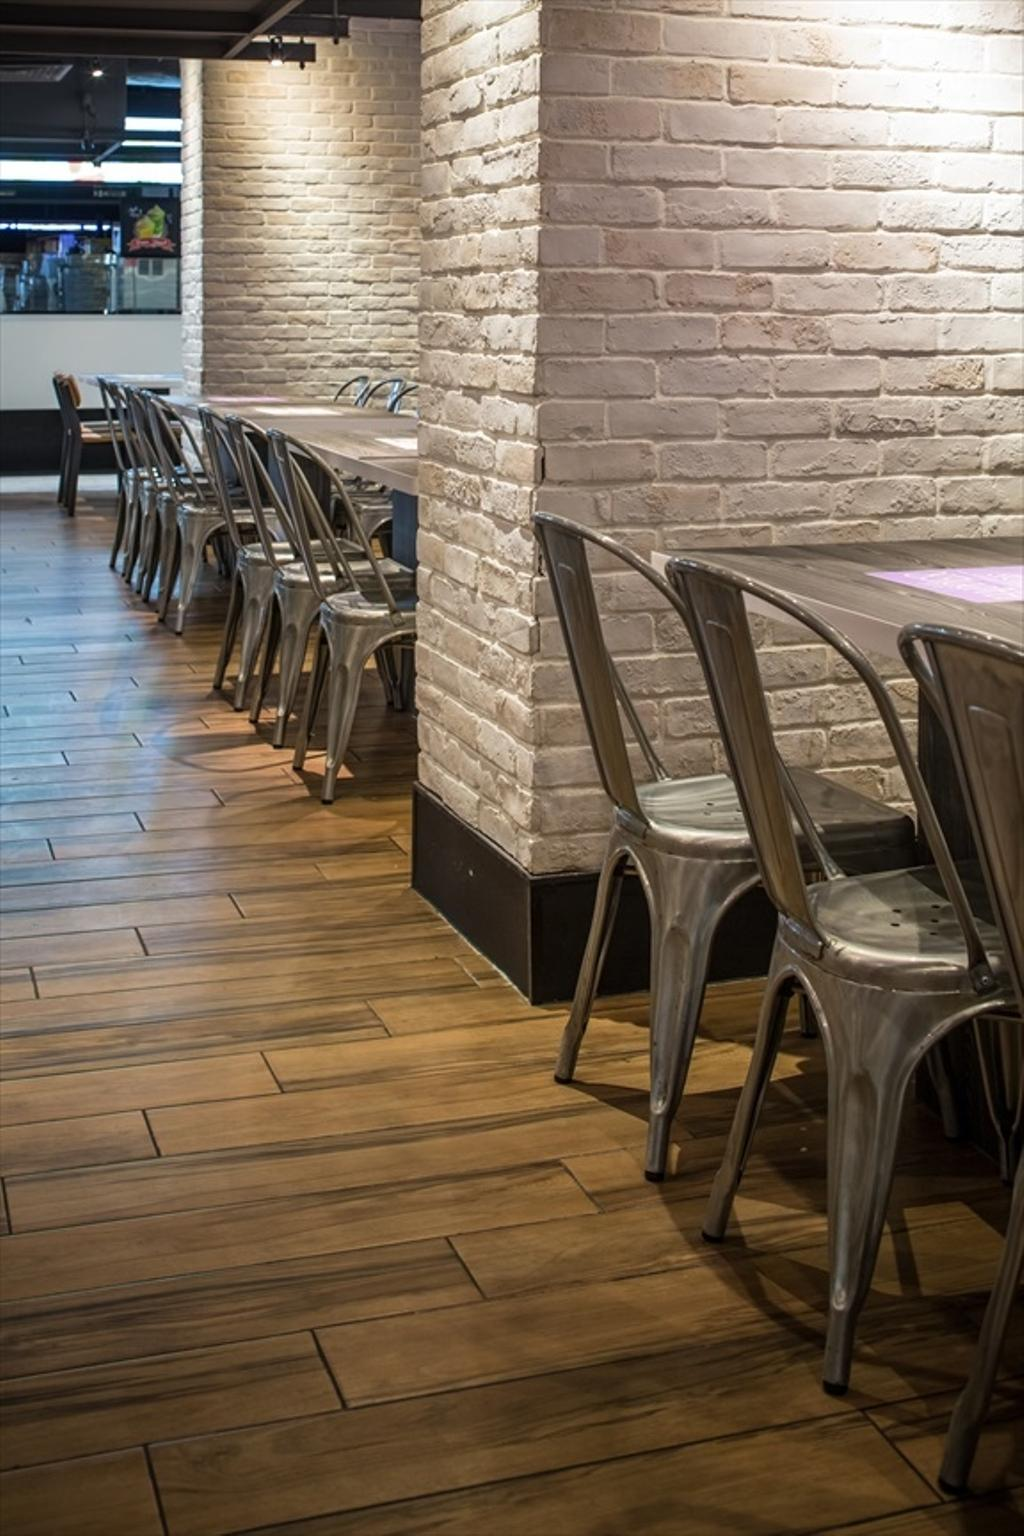 Foodfare Clifford Centre, Commercial, Architect, Wallflower Architecture + Design, Industrial, Chair, Furniture, Dining Table, Table